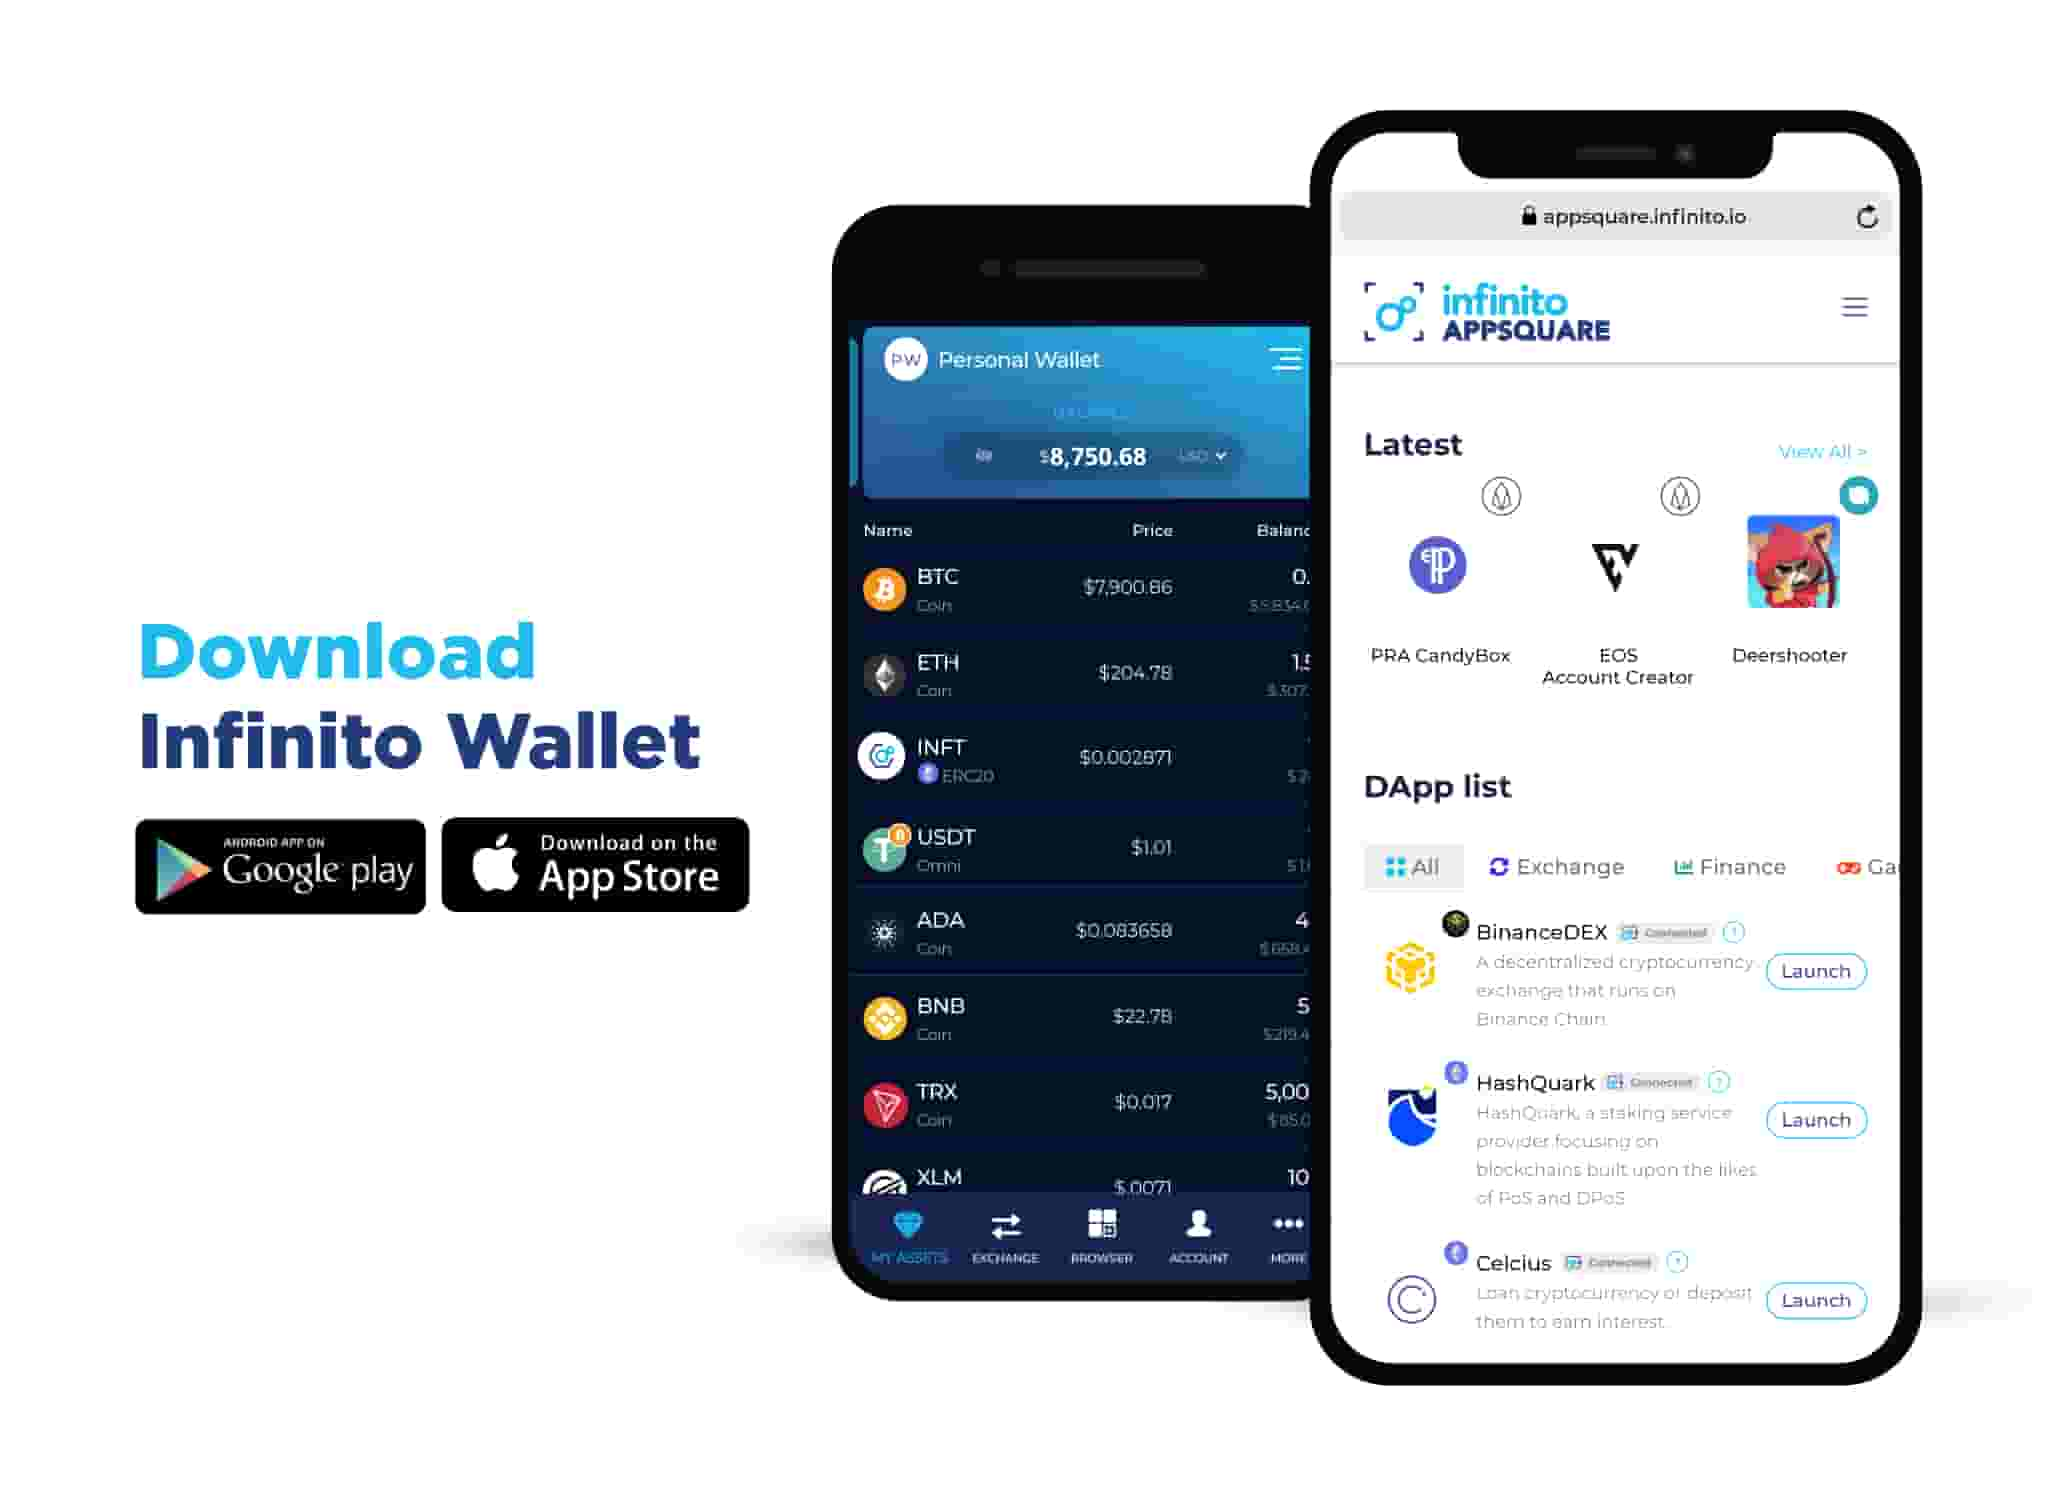 Facebook's crypto wallet is ready, even if its currency isn't